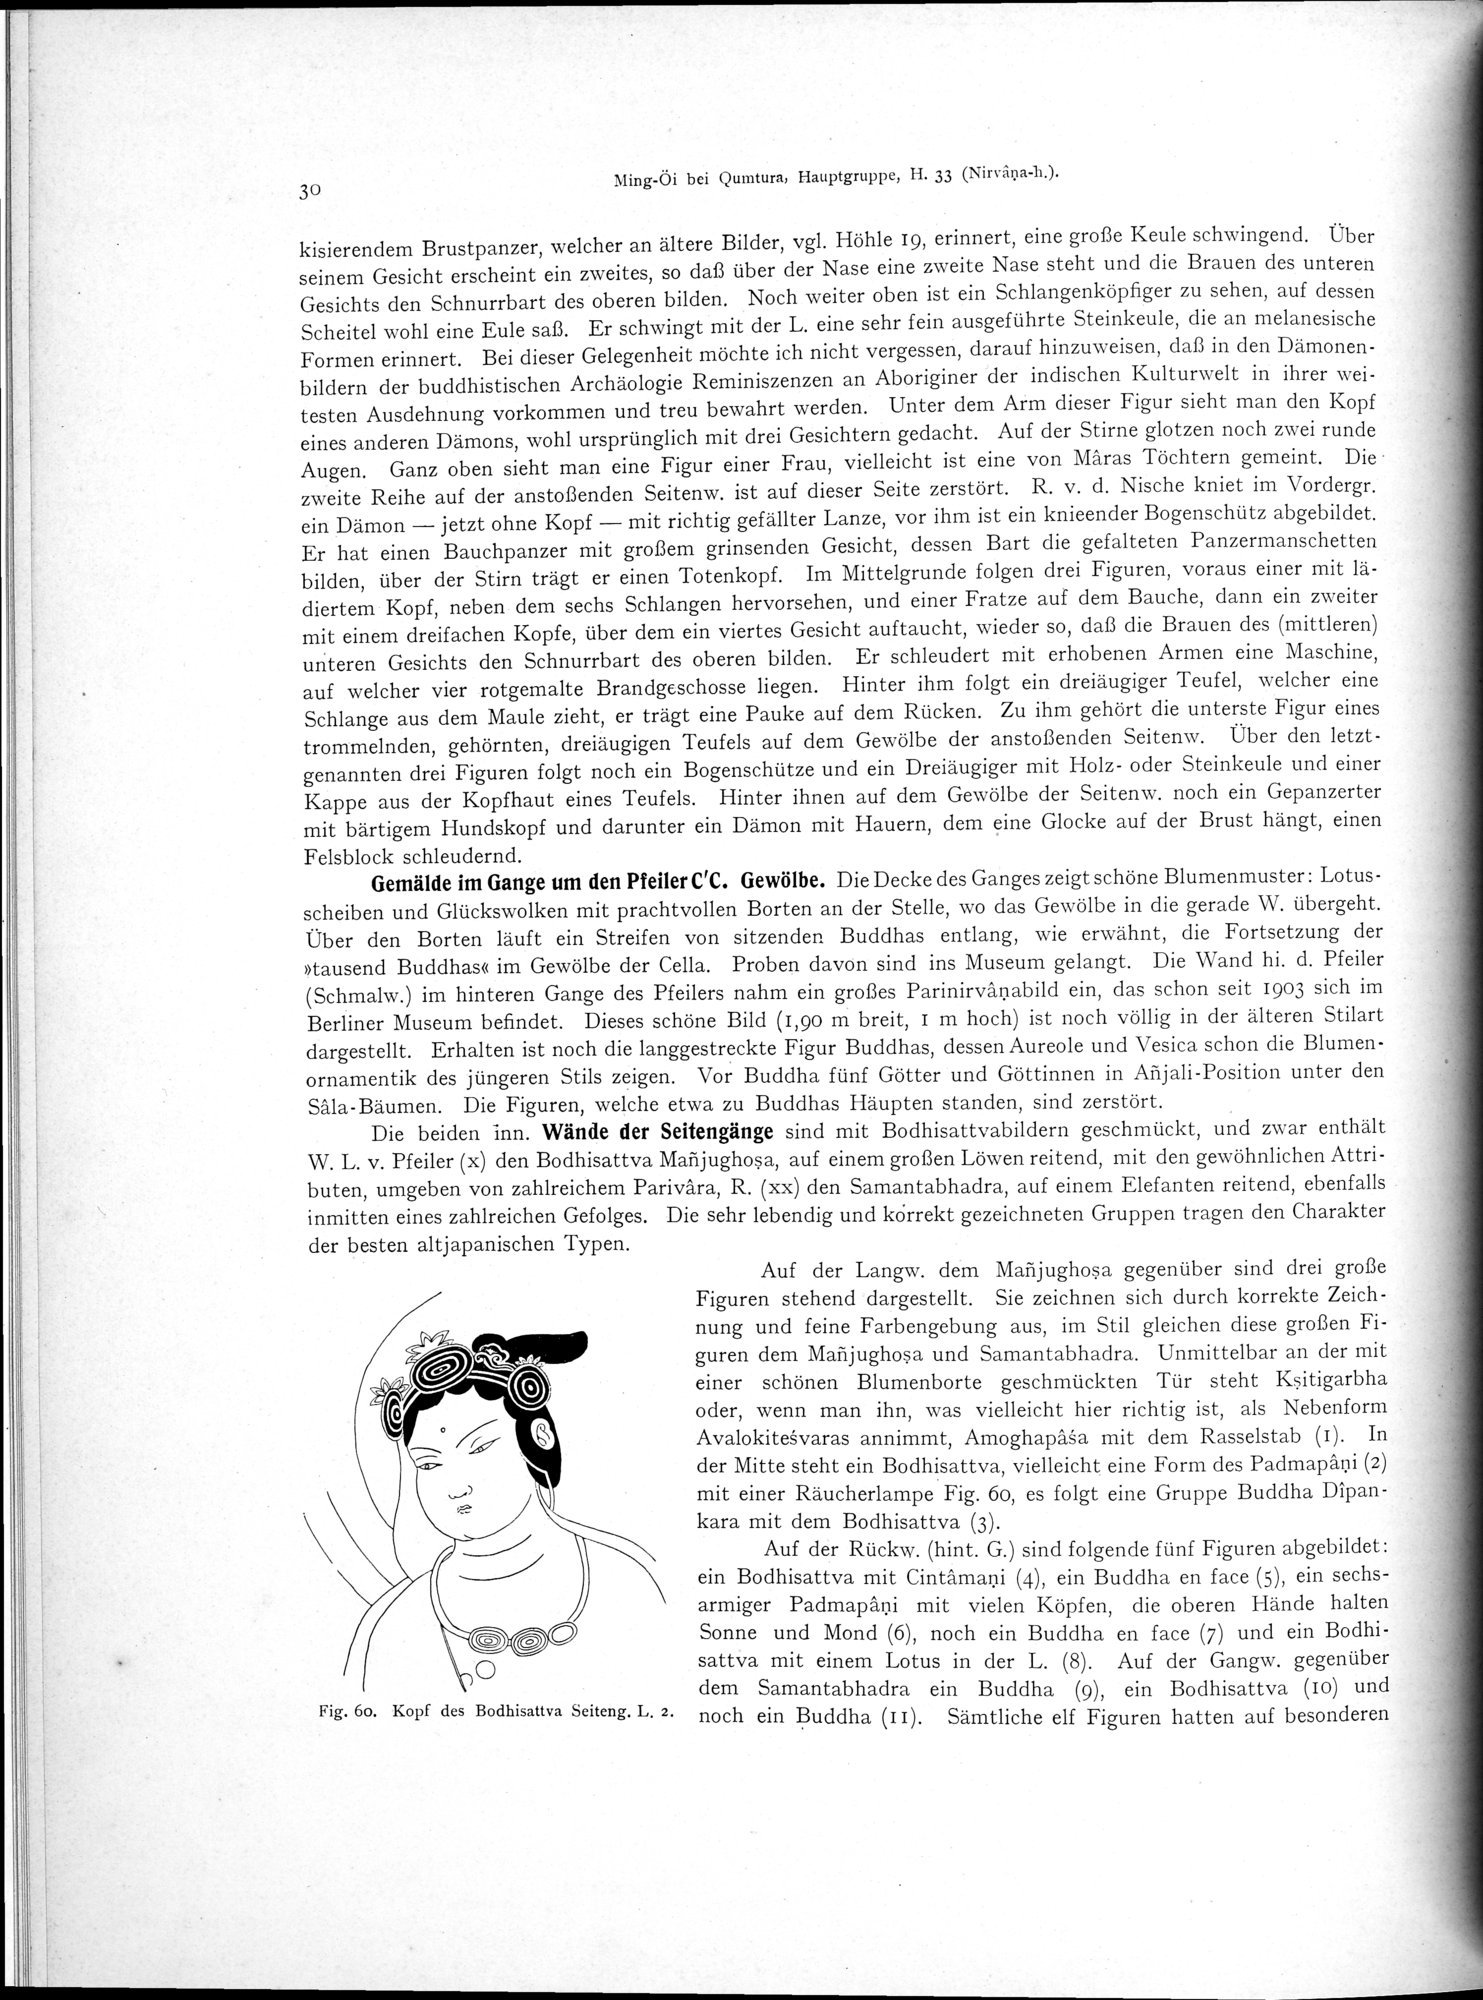 Altbuddhistische Kultstätten in Chinesisch-Turkistan : vol.1 / Page 36 (Grayscale High Resolution Image)